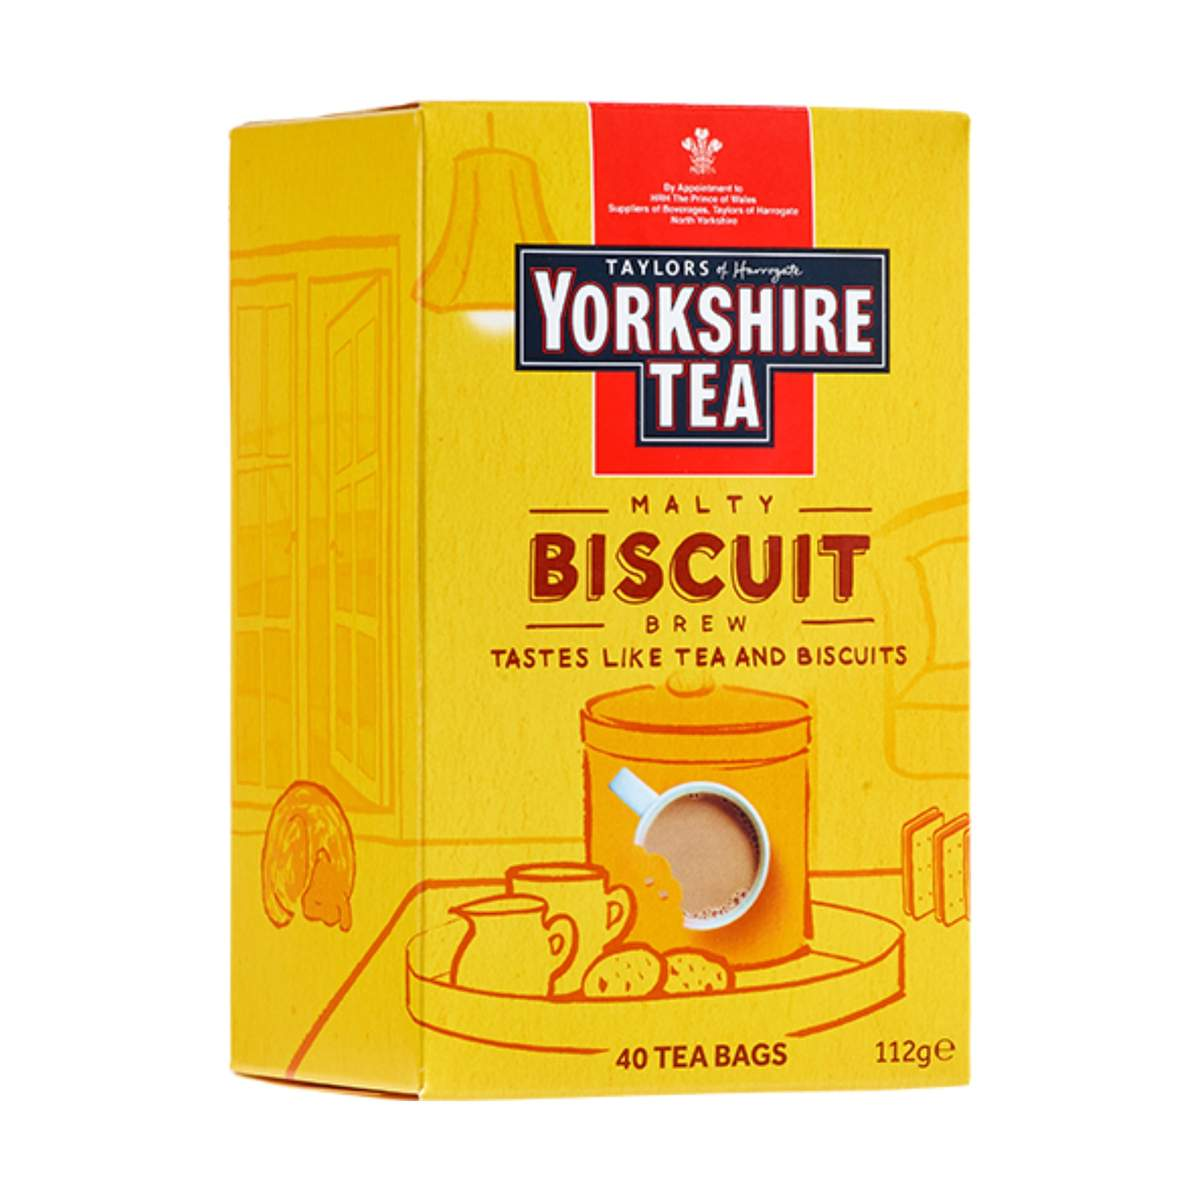 Yorkshire Tea Biscuit Brew Teabags